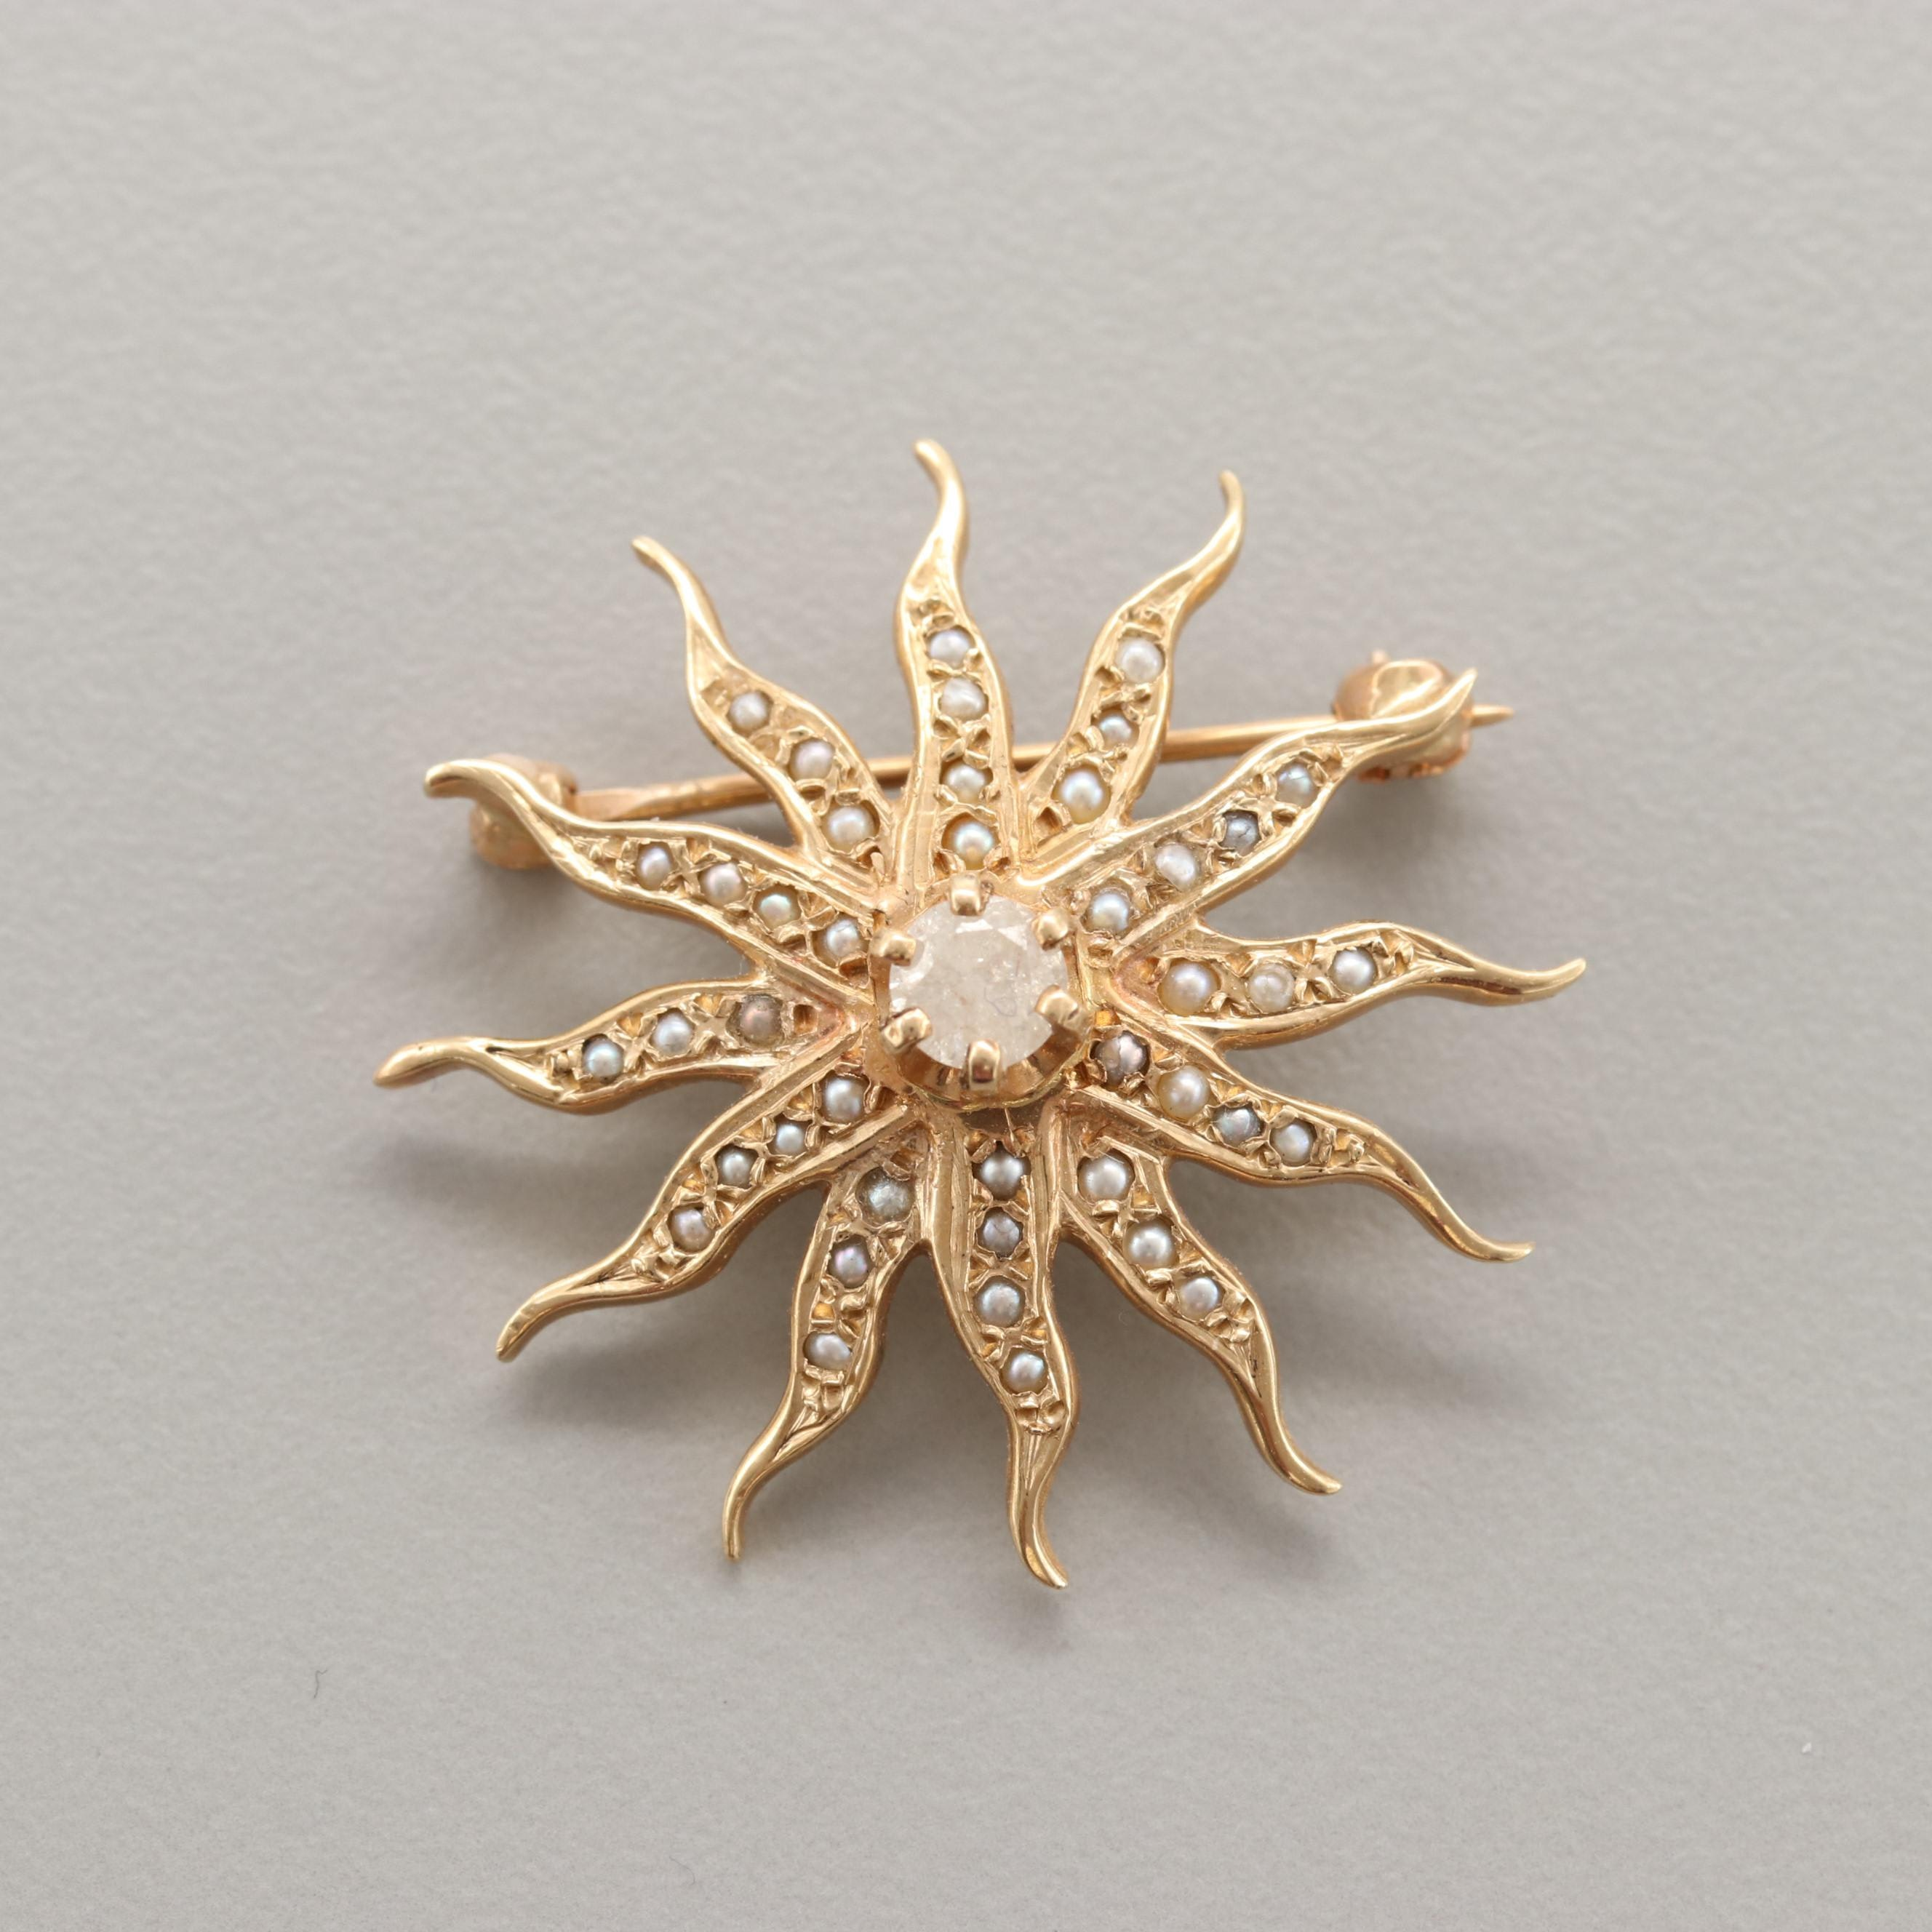 Victorian Revival 14K Yellow Gold Diamond and Cultured Pearl Sunburst Brooch Pin